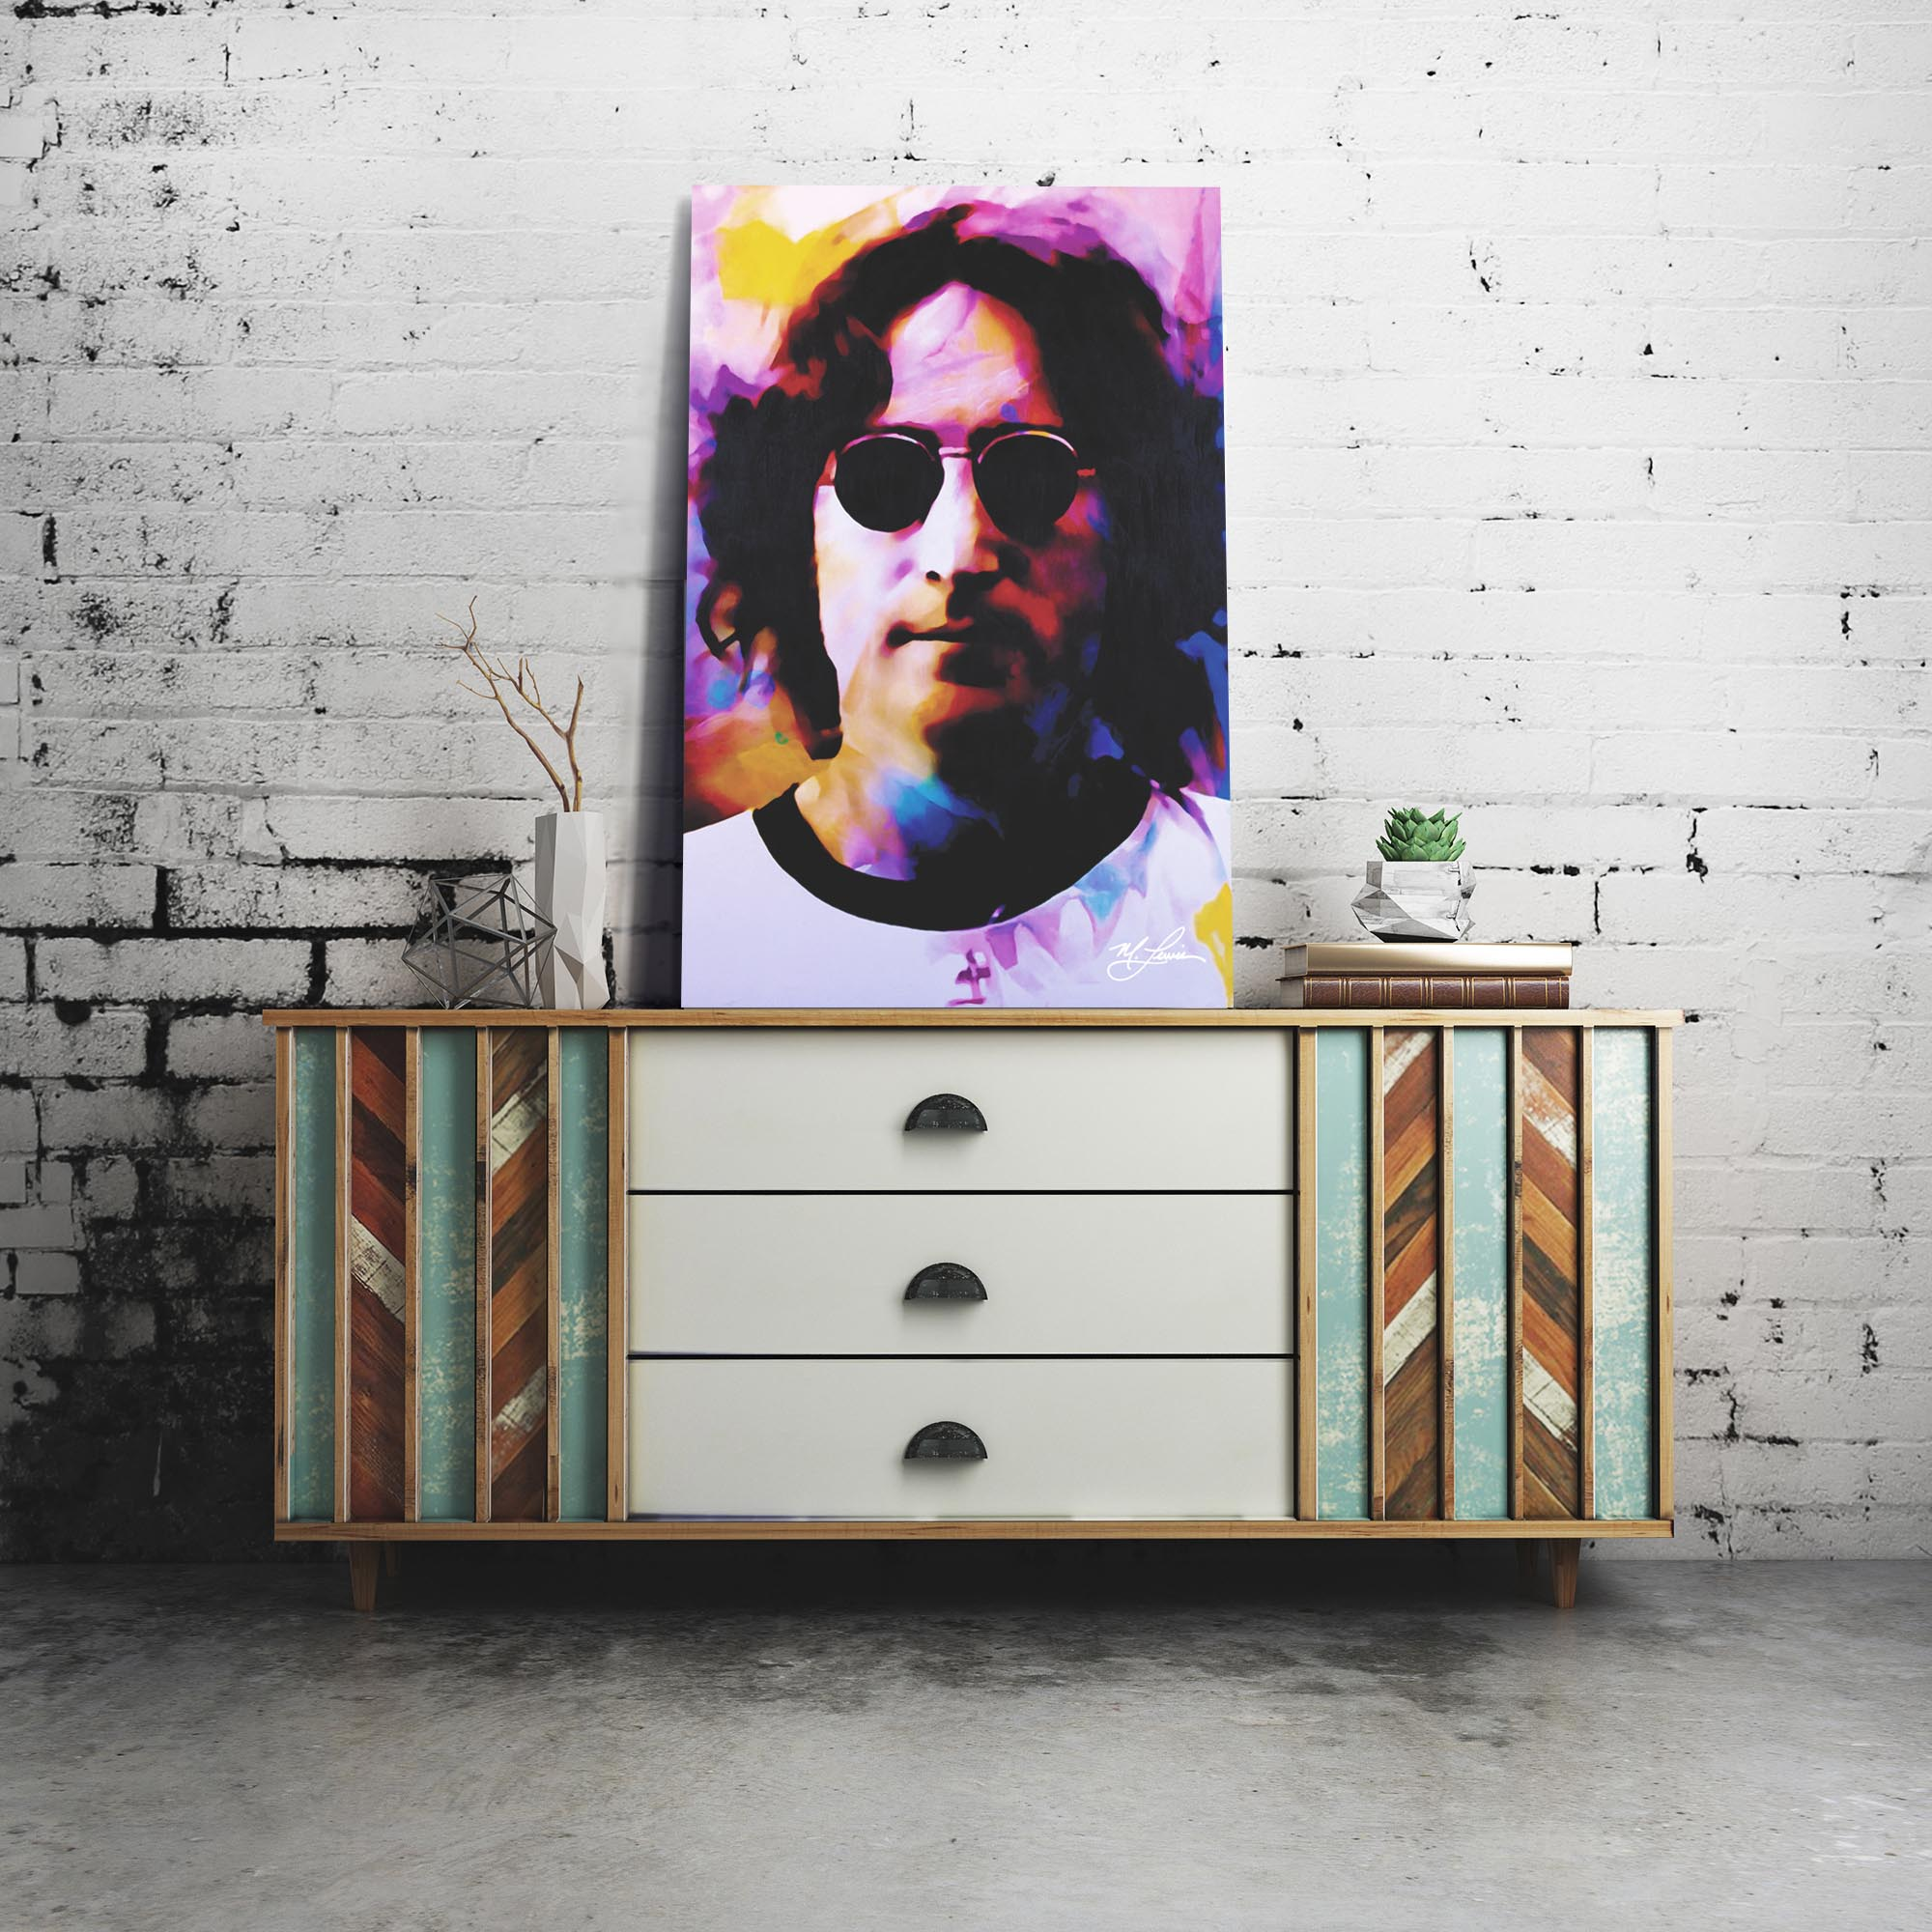 John Lennon Dance of Emotion 22x32 Metal or Plexiglass Pop Art Portrait - Lifestyle View